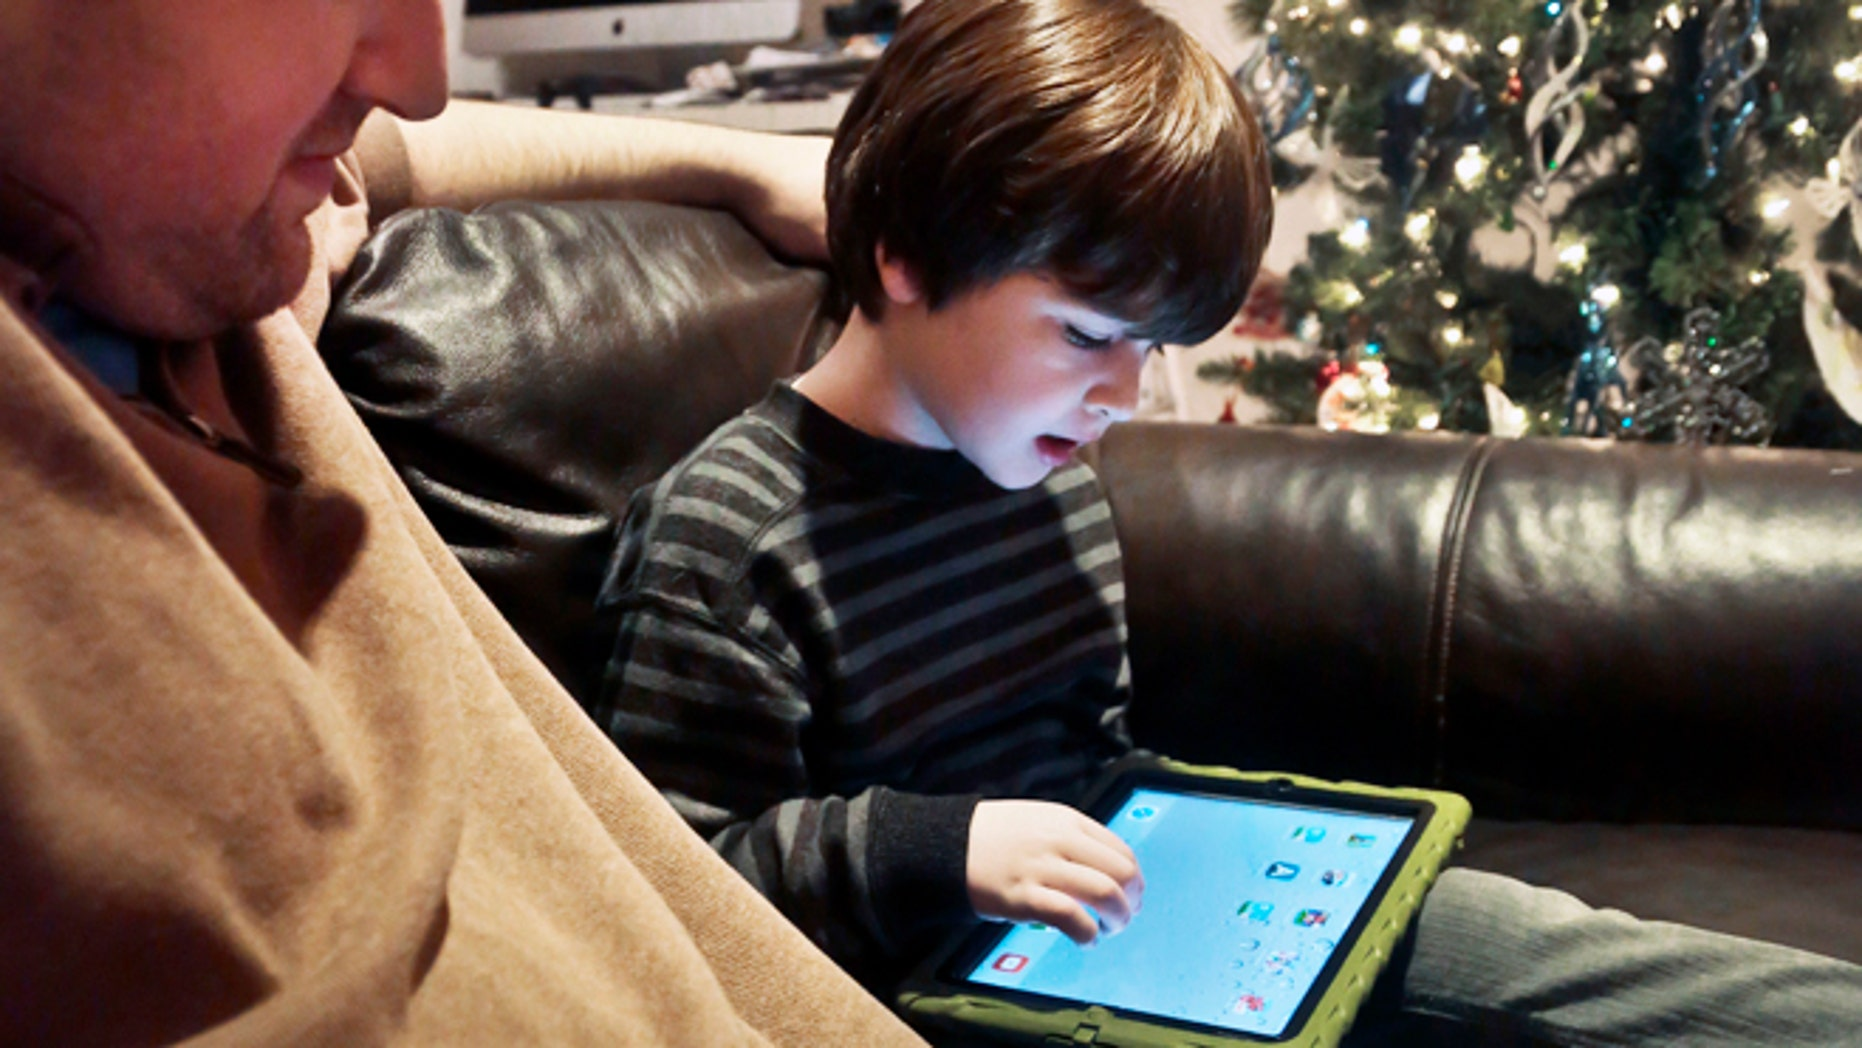 Dec. 3, 2013: Adam Cohen watches as his son Marc, 5, uses a tablet at their home in New York. Tablets of all types are expected to rank among the top holiday gifts for children this year, but some experts and advocates question the educational or developmental benefits for youngsters.